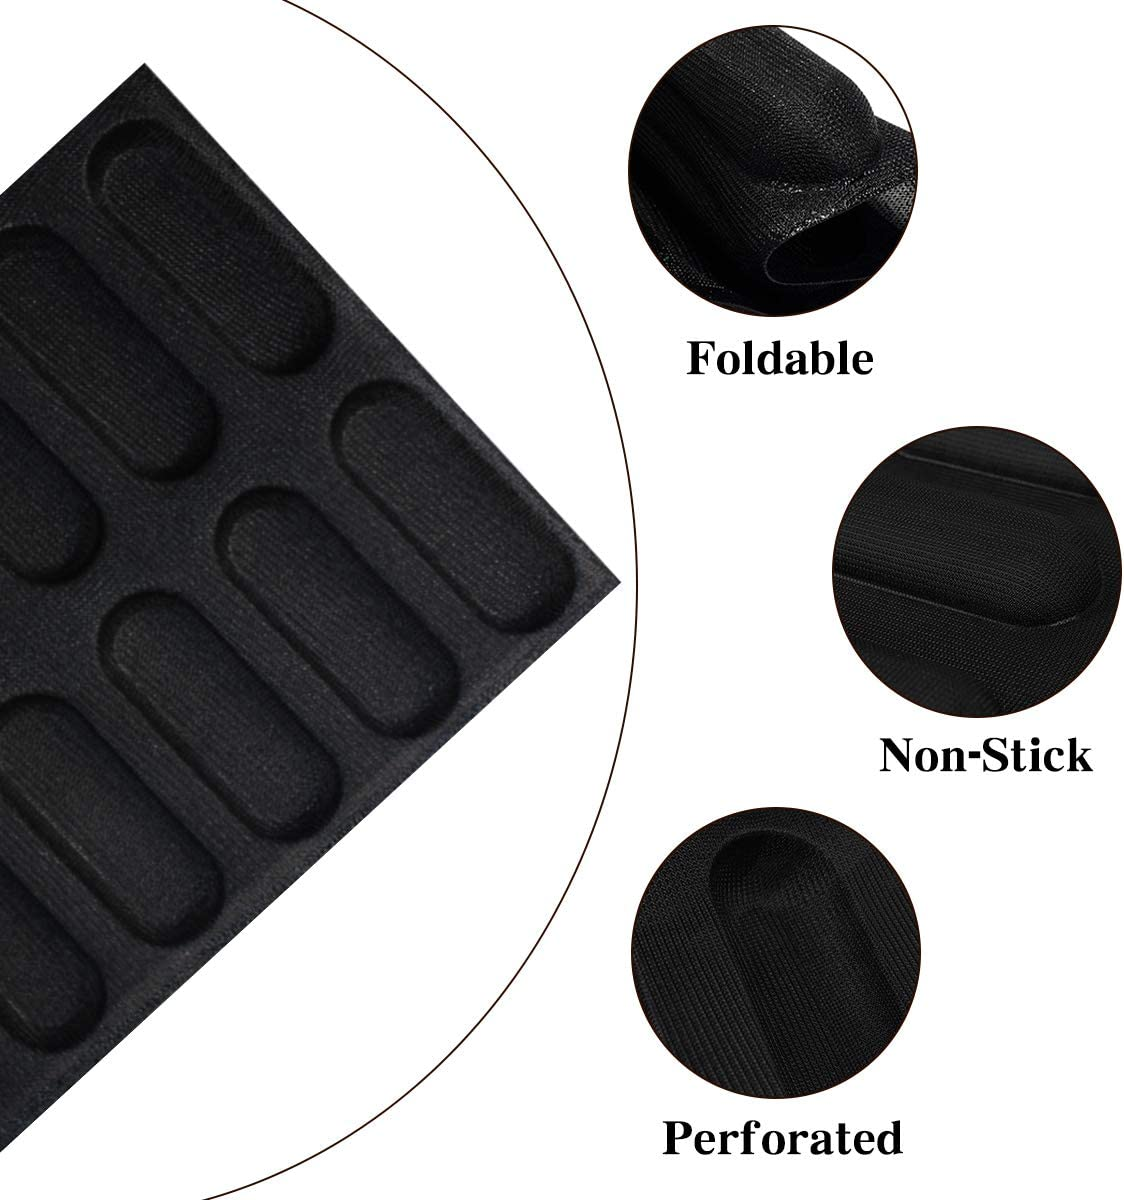 12Loaf,Black Hot Dog Bun Mold Mini Silicone Baguette Mould Non-Stick Baking Form Mini Baby Sandwich Baking Molds Silicone Perforated Baking Forms